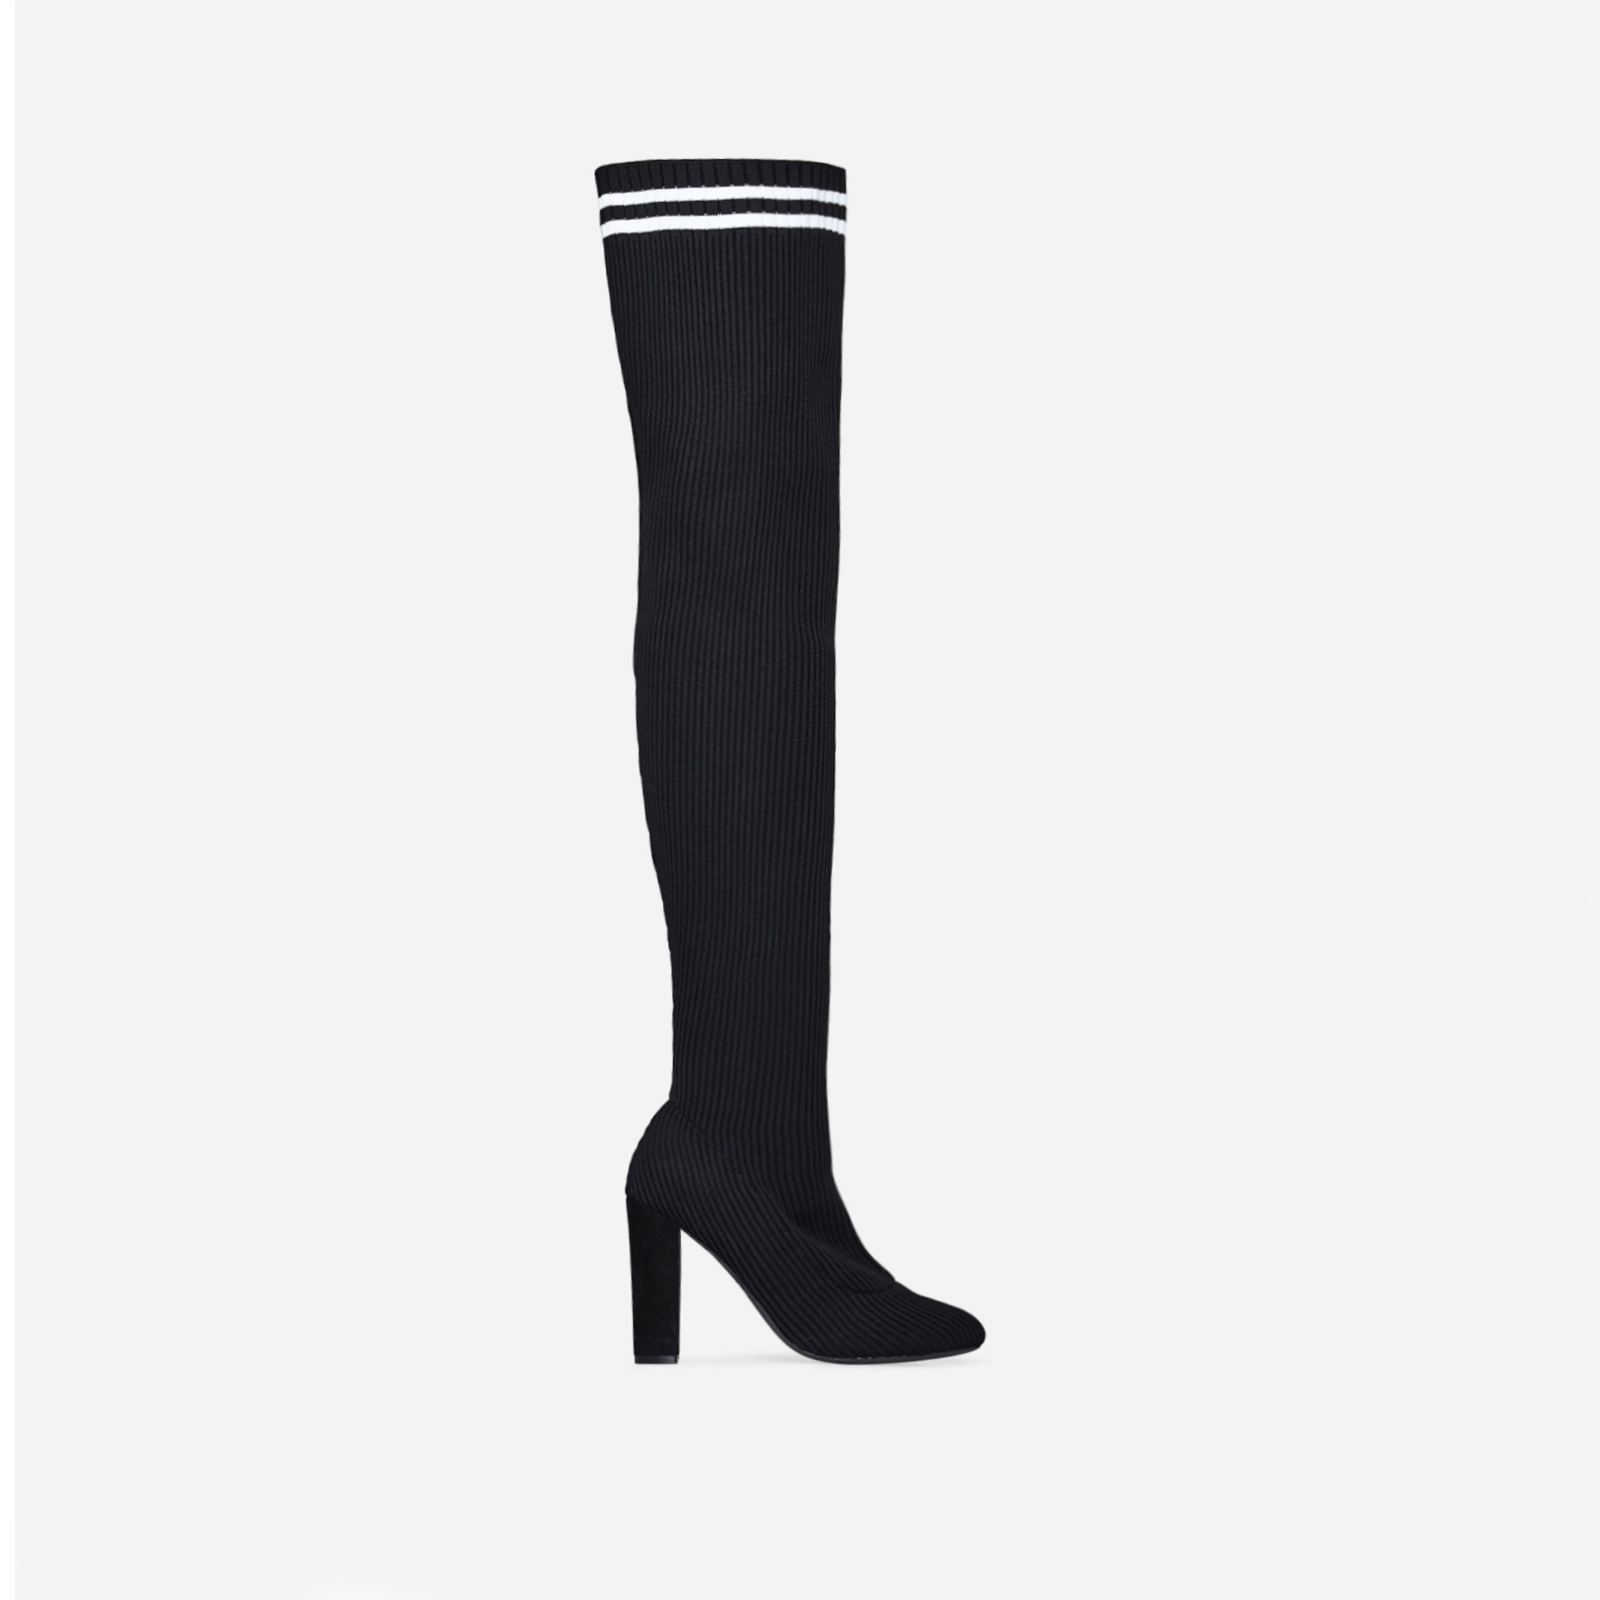 Weaver Striped Over The Knee Long Boot In Black Knit